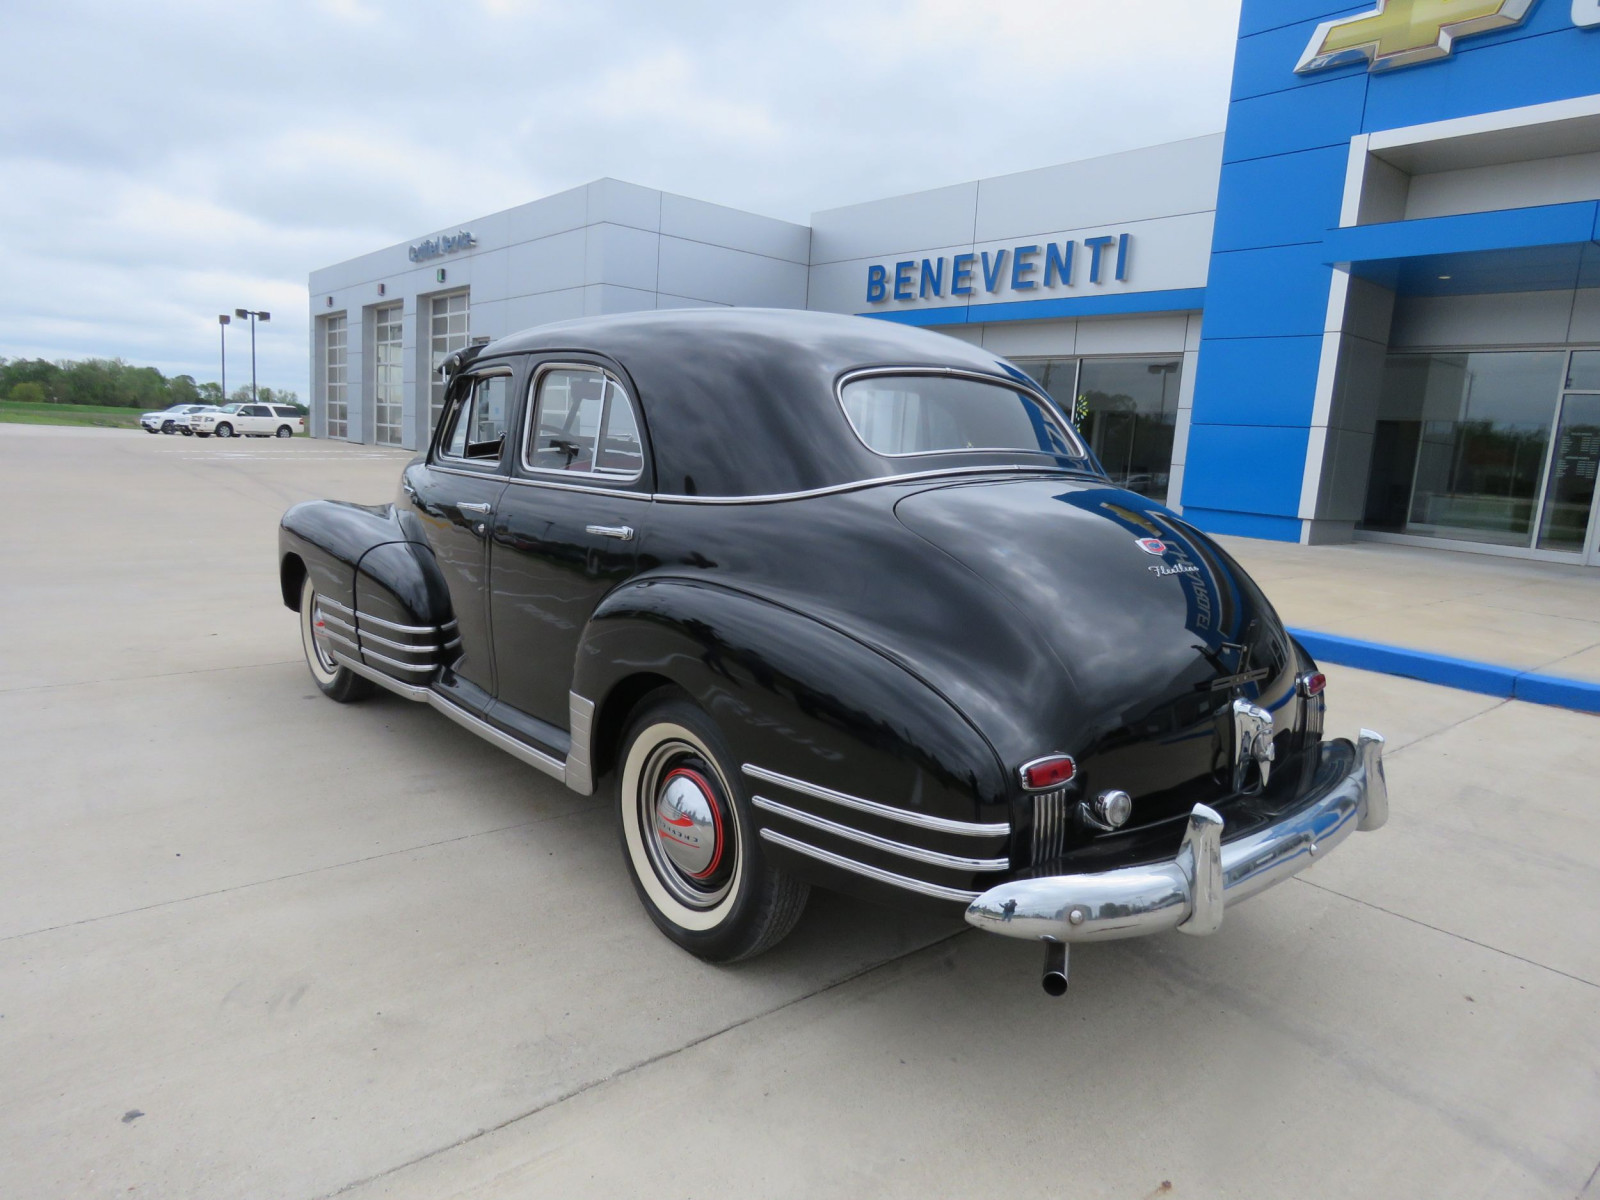 1947 Chevrolet Fleetline 4dr Sedan - Image 5